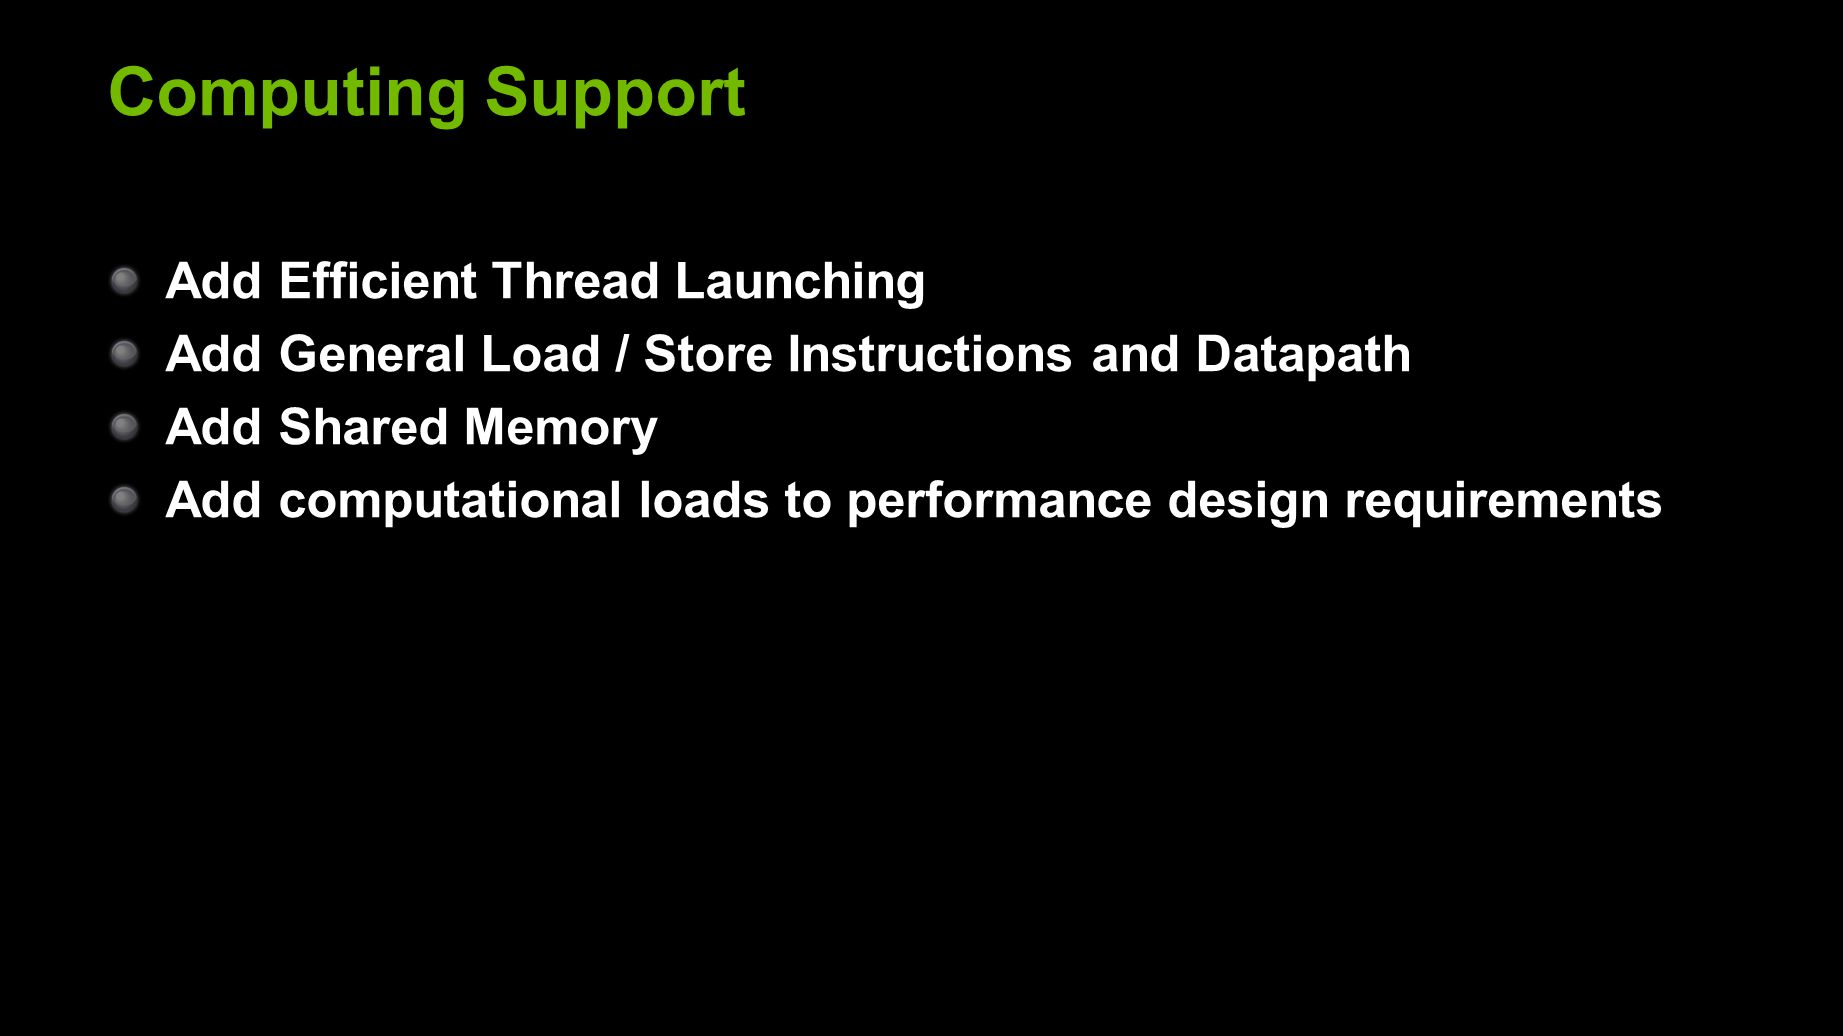 Computing Support Add Efficient Thread Launching Add General Load / Store Instructions and Datapath Add Shared Memory Add computational loads to performance design requirements